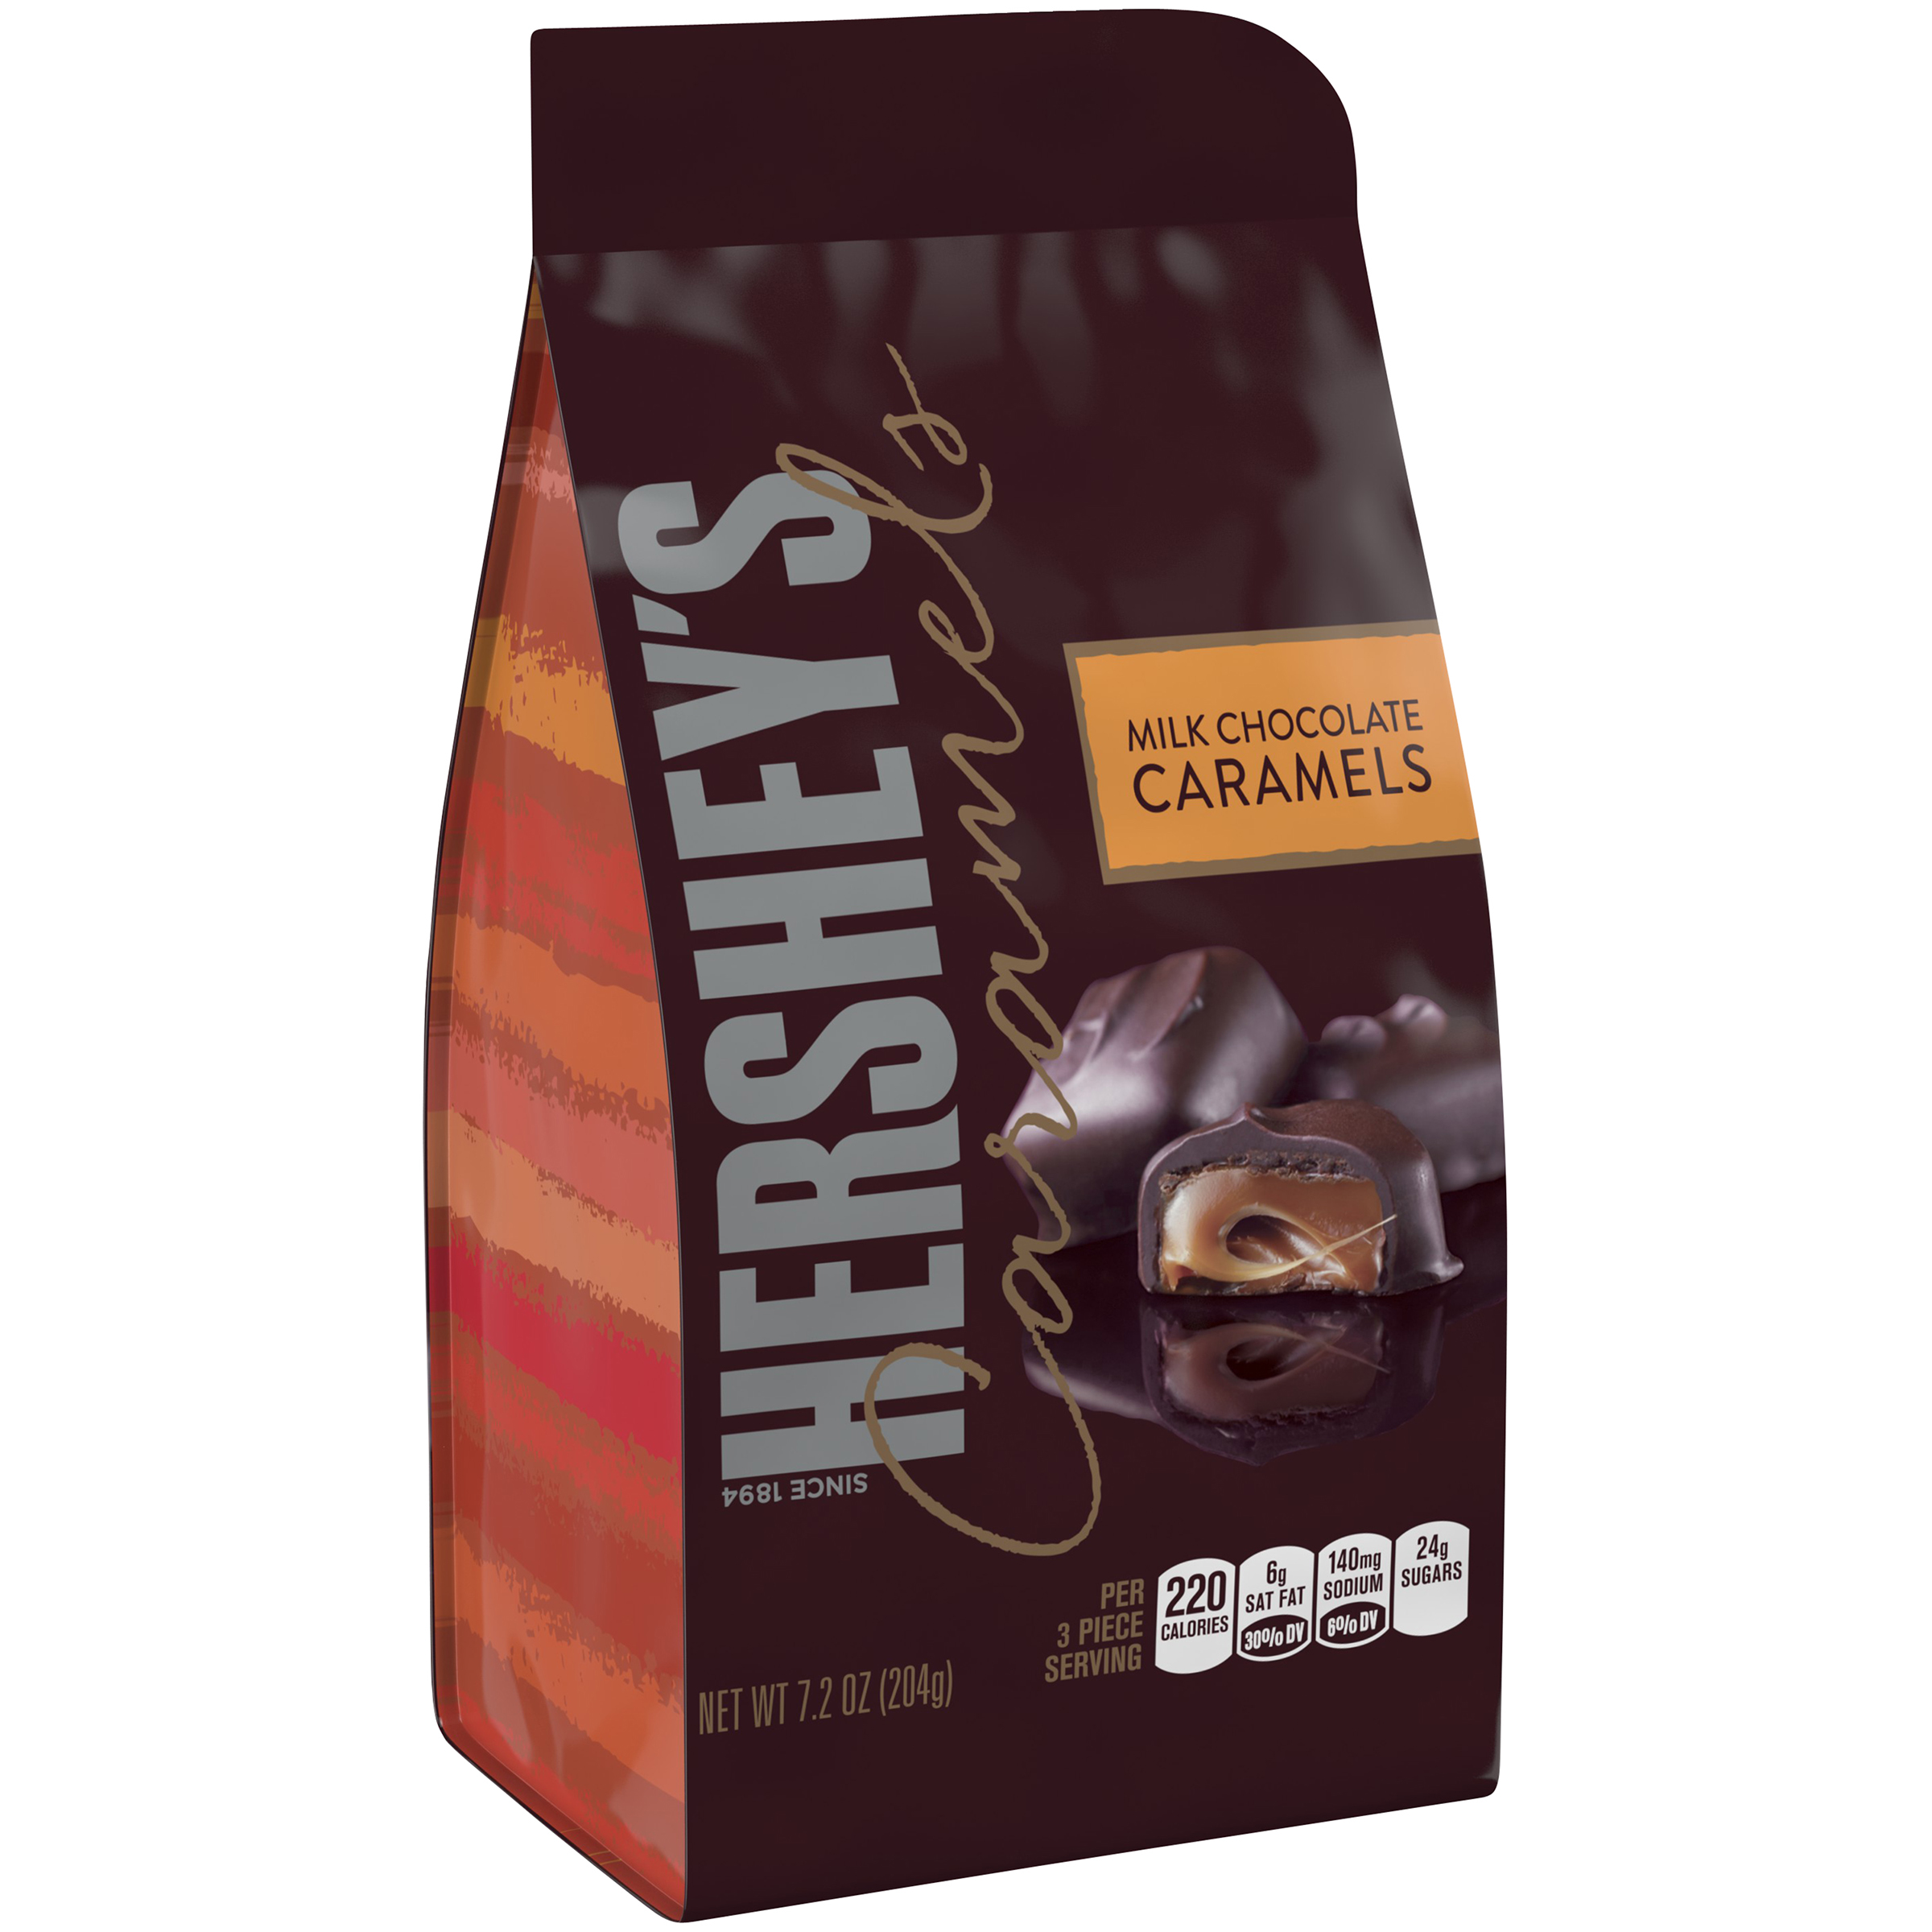 HERSHEYS Caramels in Milk Chocolate, 7.2 oz by The Hershey Company